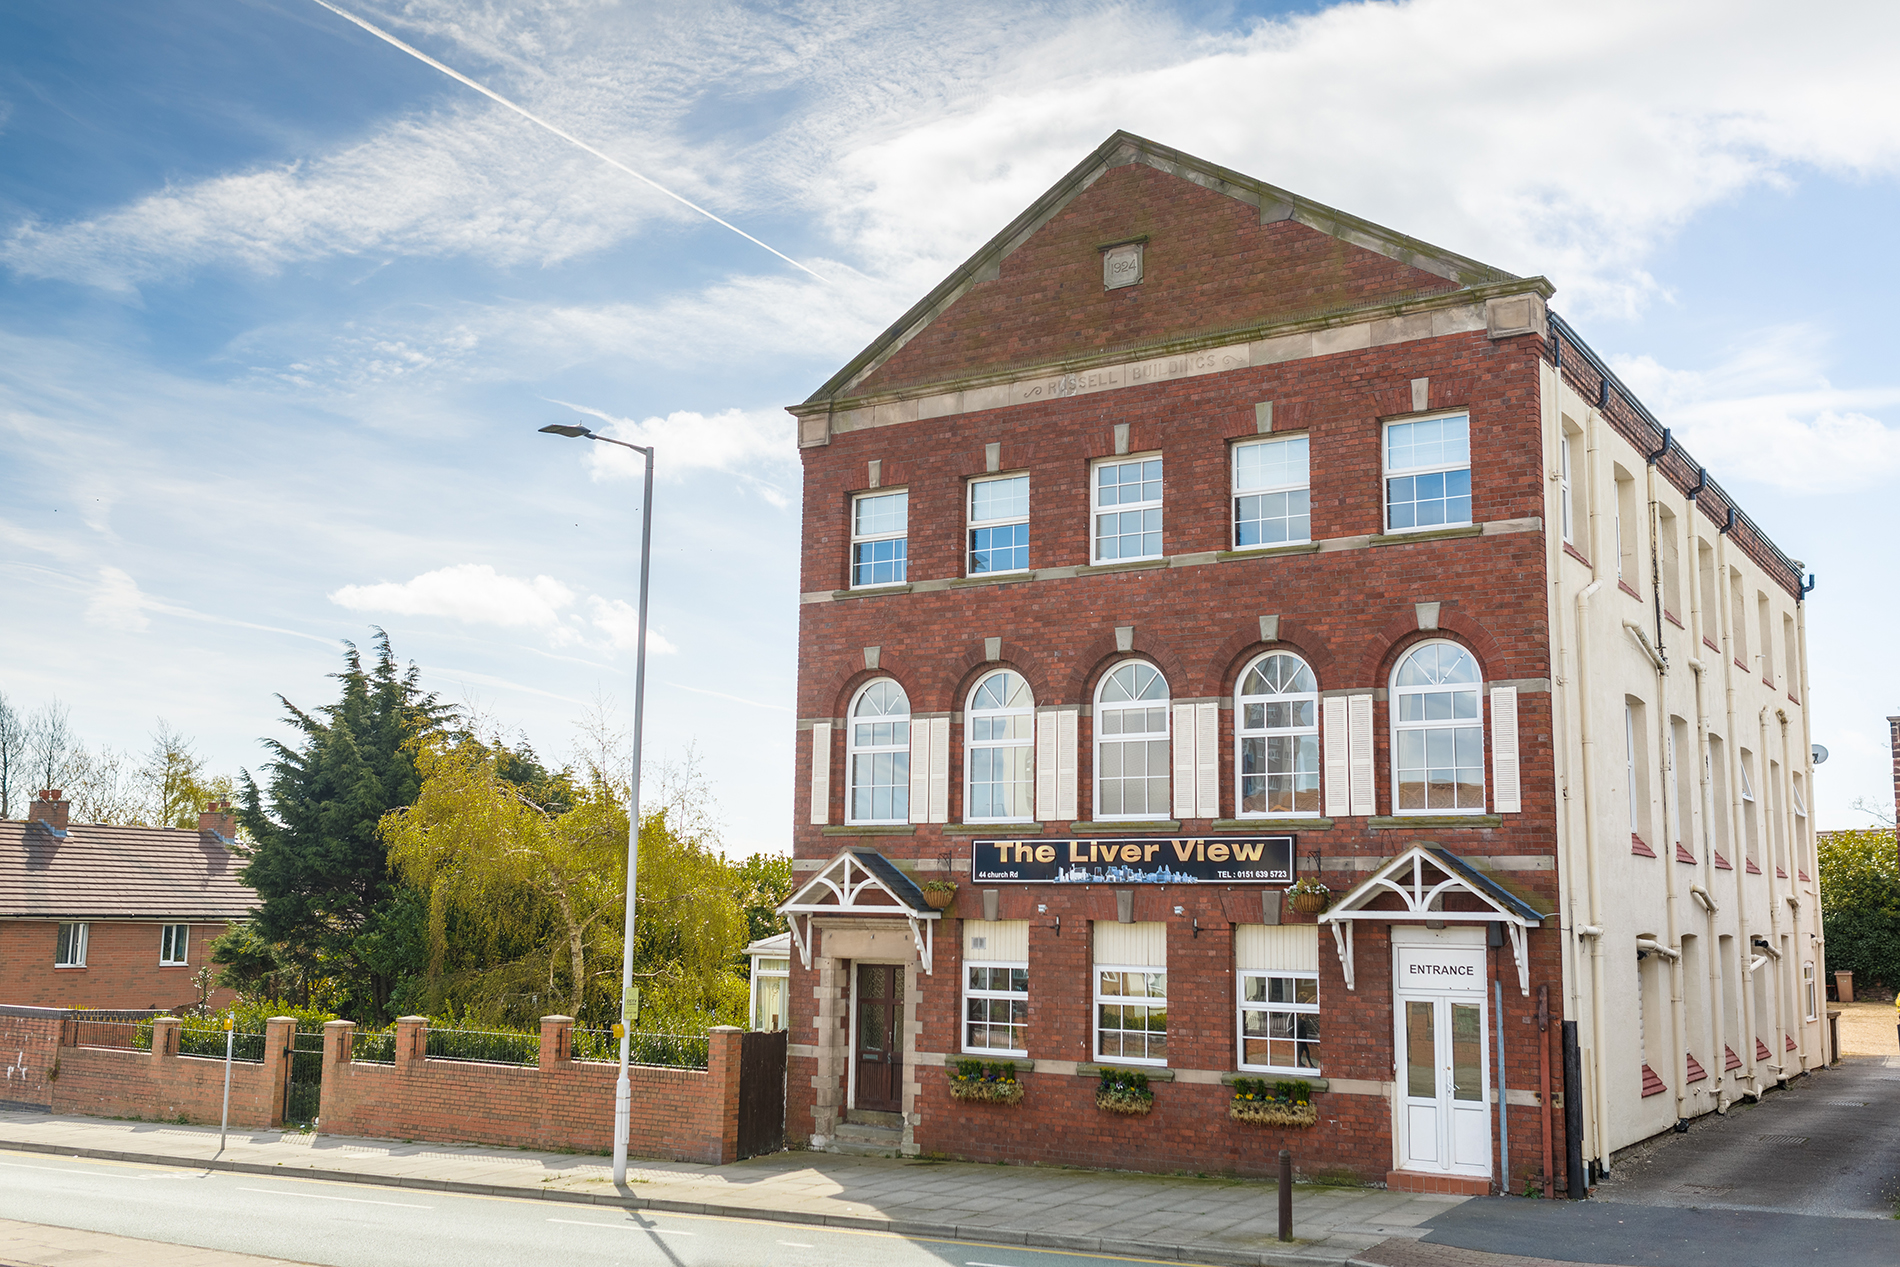 LiverView Hotel In Wallasey Birkenhead Liverpool - Amazing house built across a river